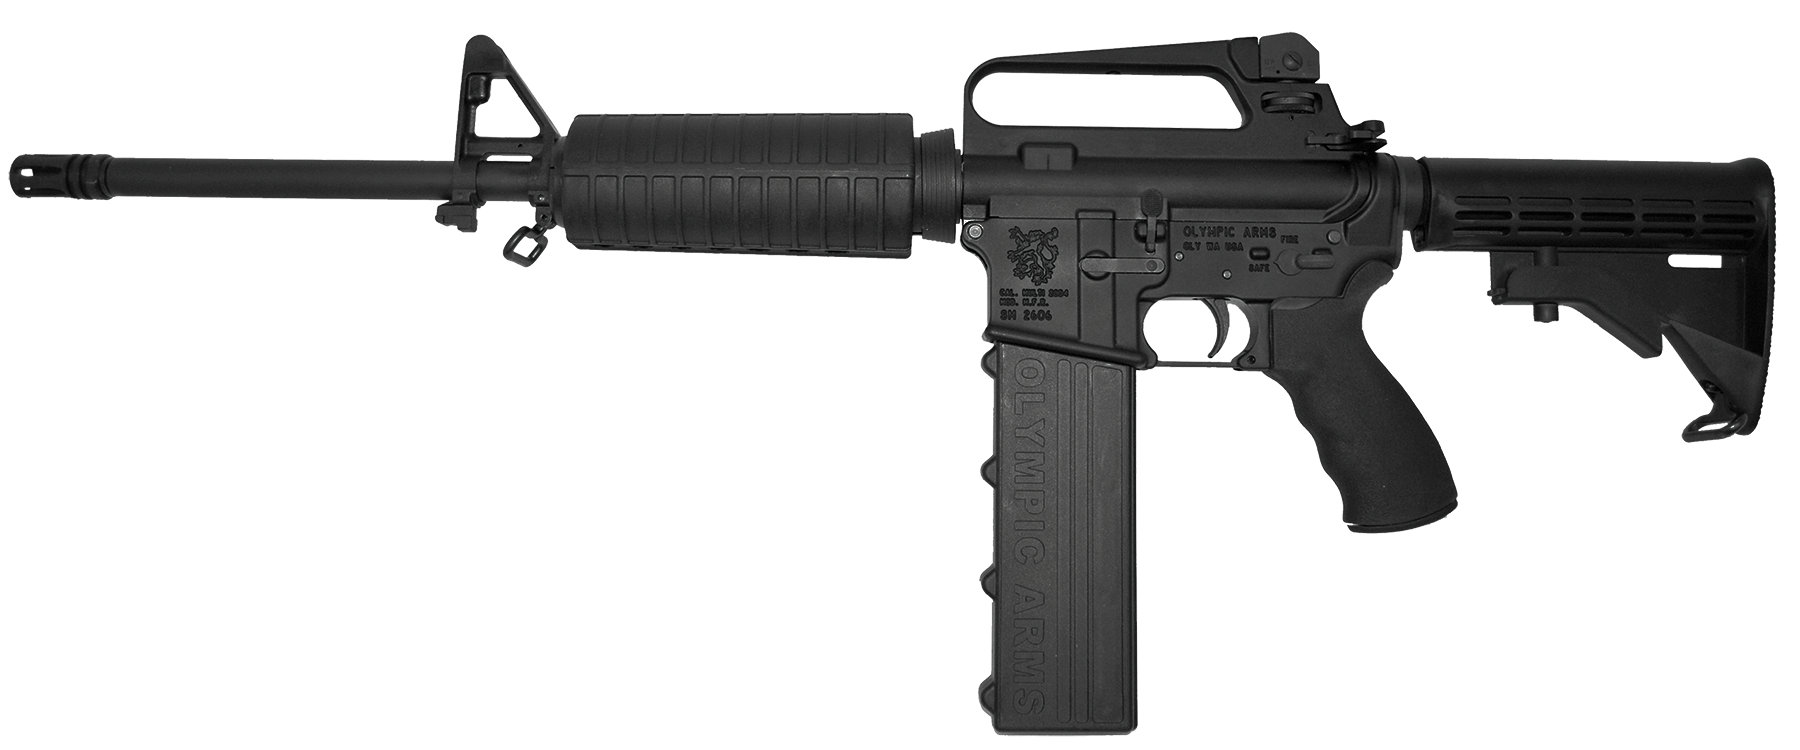 Olympic Arms K9 K9 Carbine Semi-Automatic 9mm 16